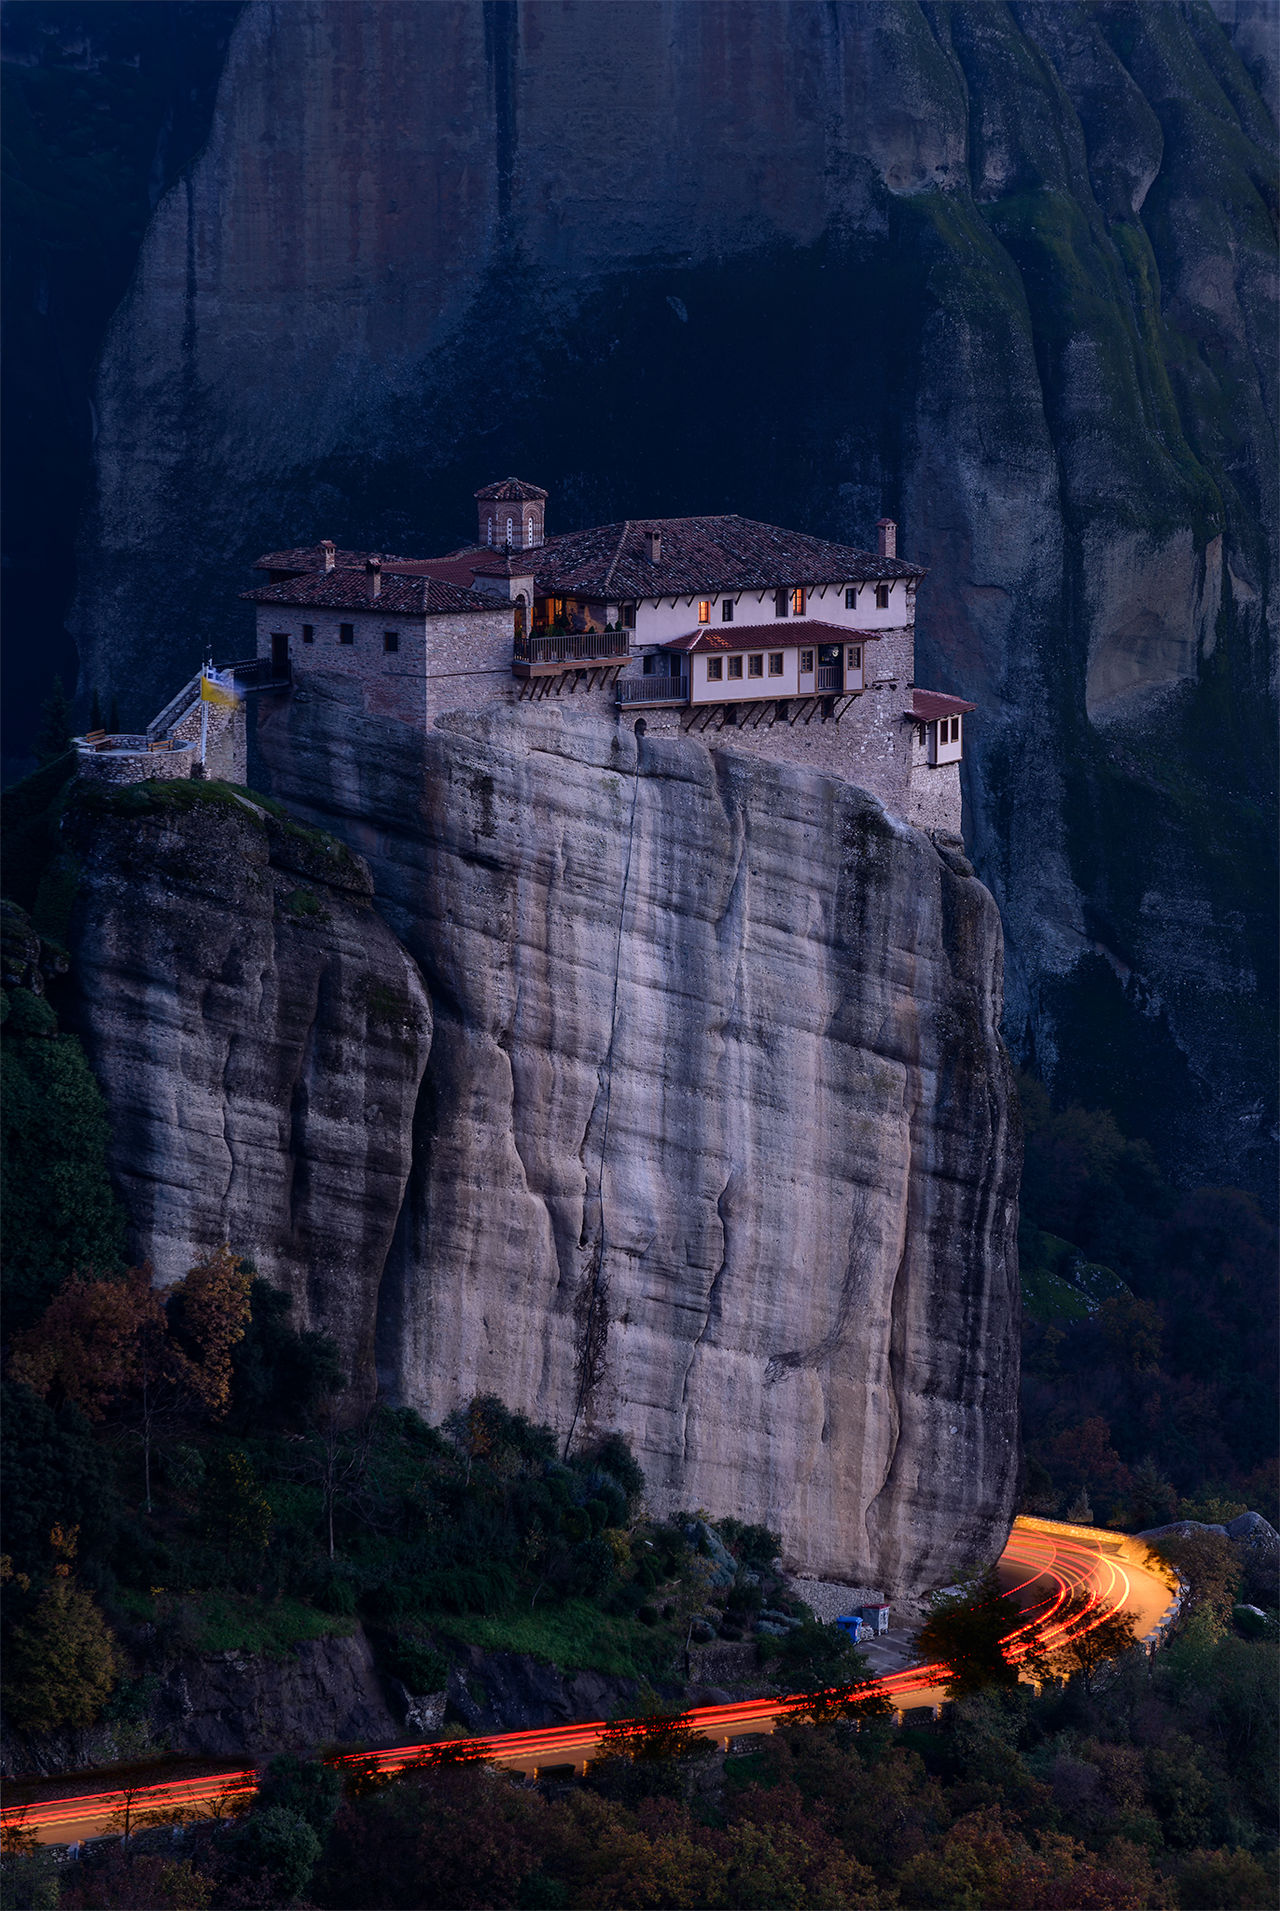 The Roussanou monastery in Meteora, Greece at night Belief Church Cliff Dusk Greece Hellas Hill Landmark Light Light And Shadow Lights Meteora Monastery Mountain Night Pray Religion Trail Trails Travel Travel Destinations VisitGreece